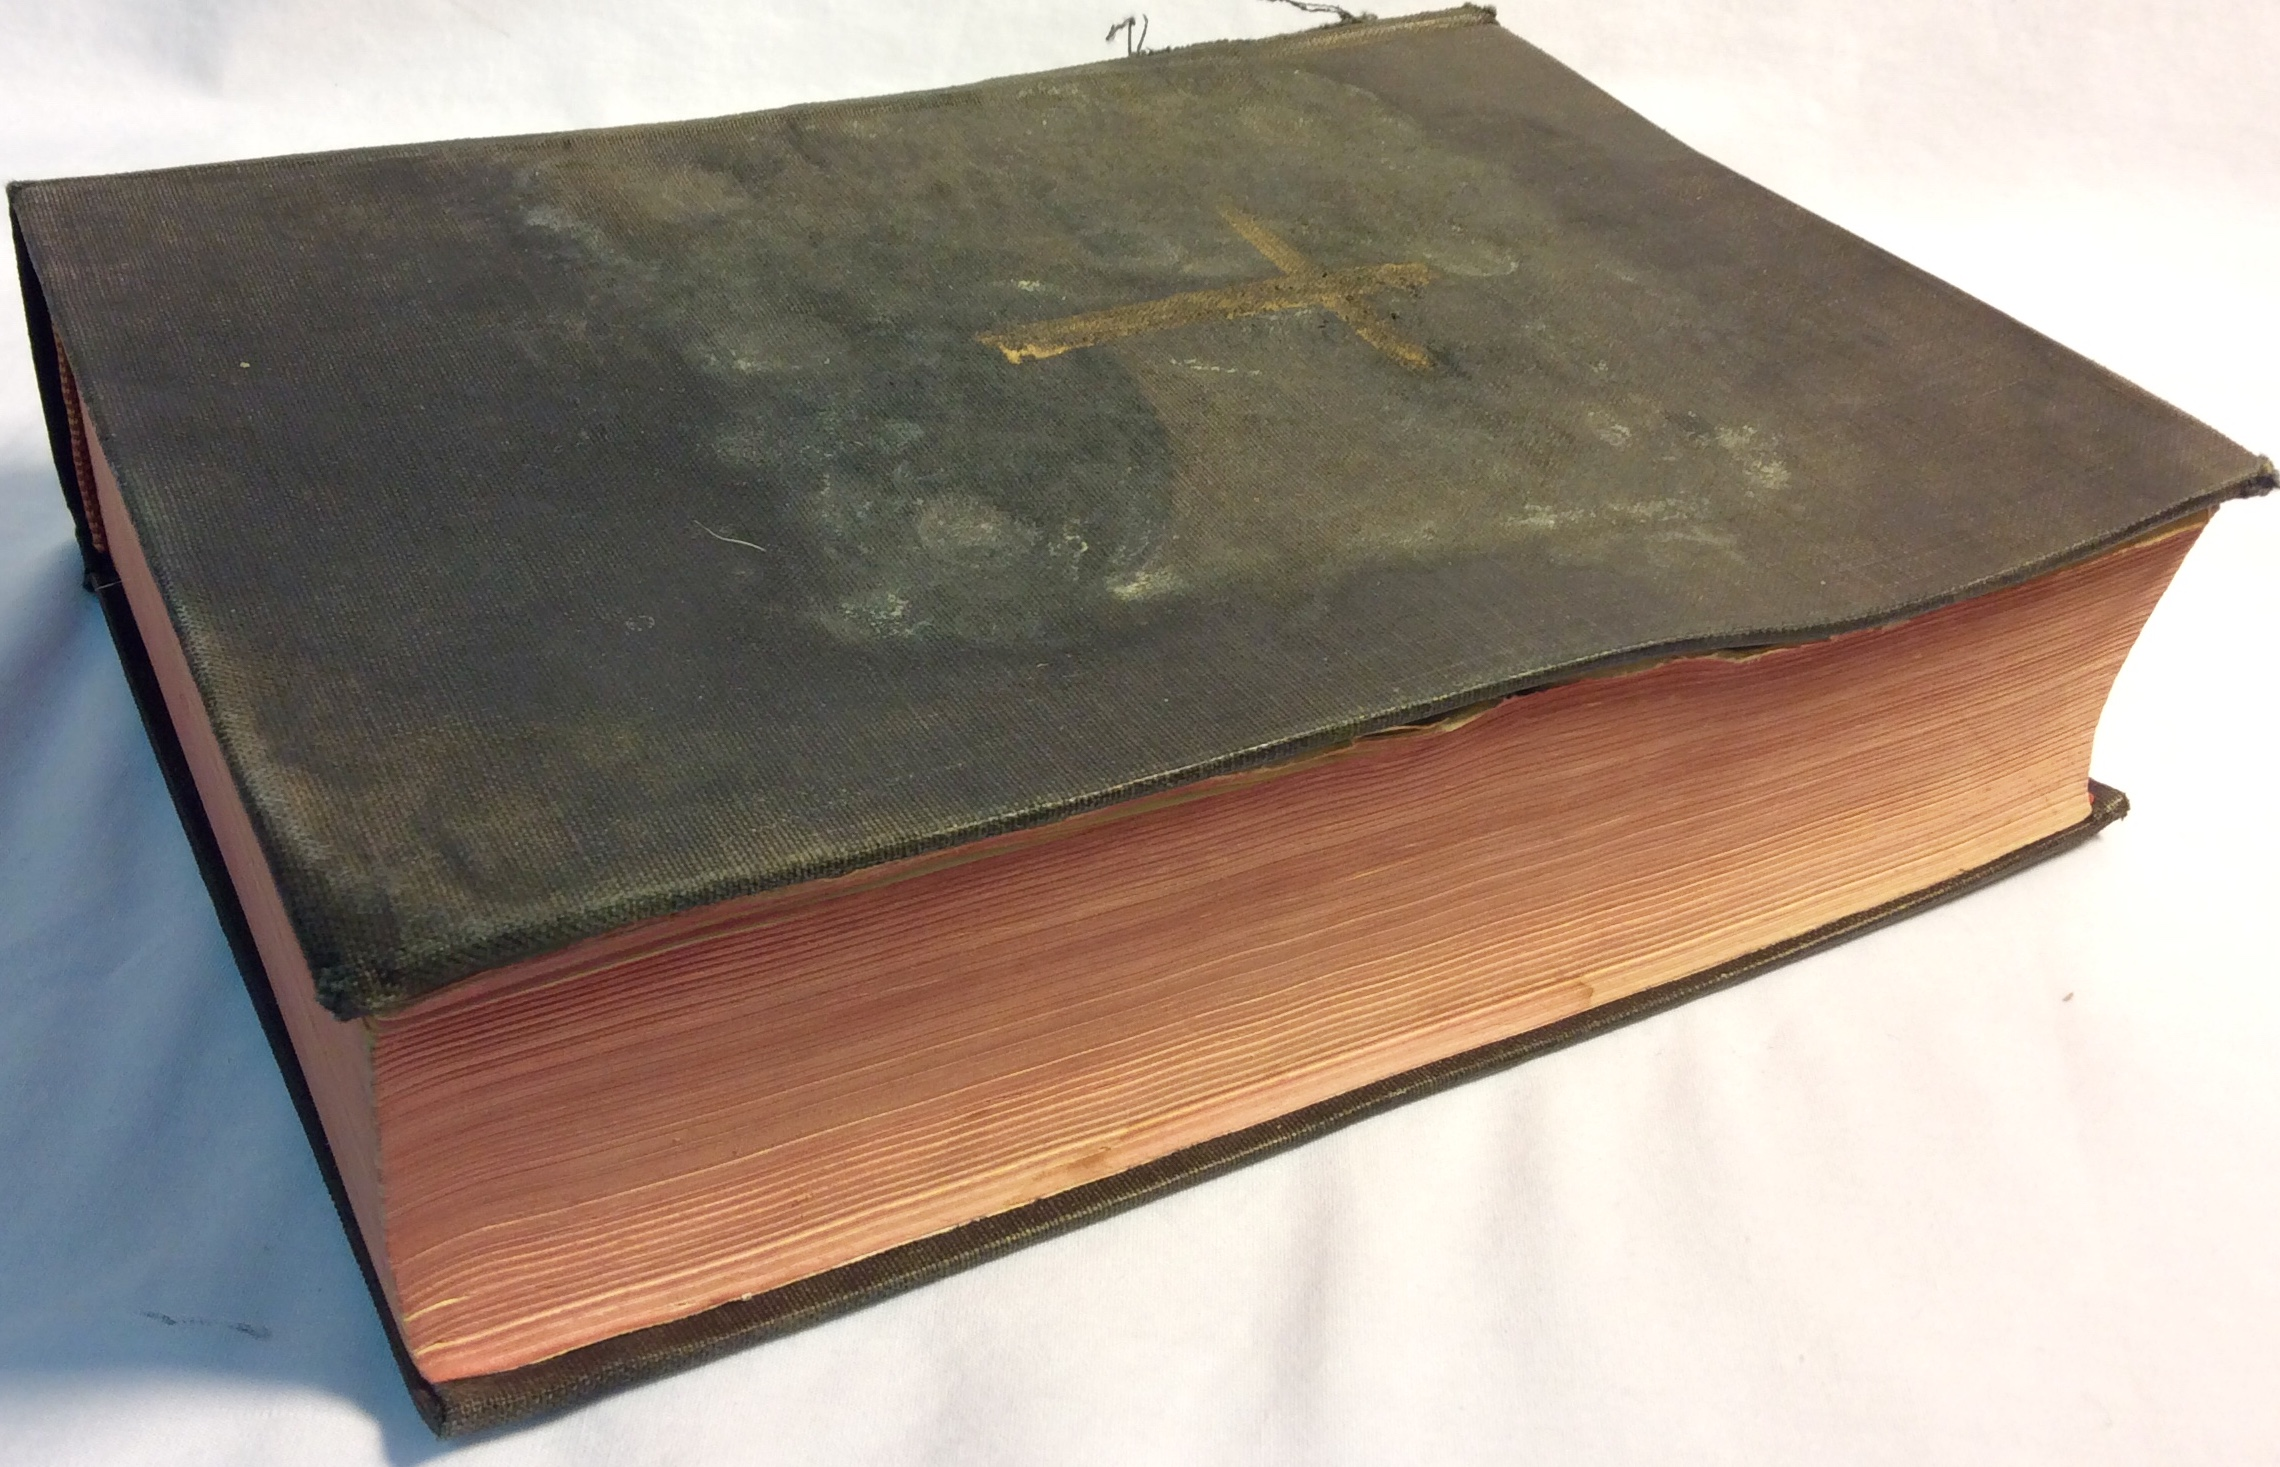 Aged holy bible